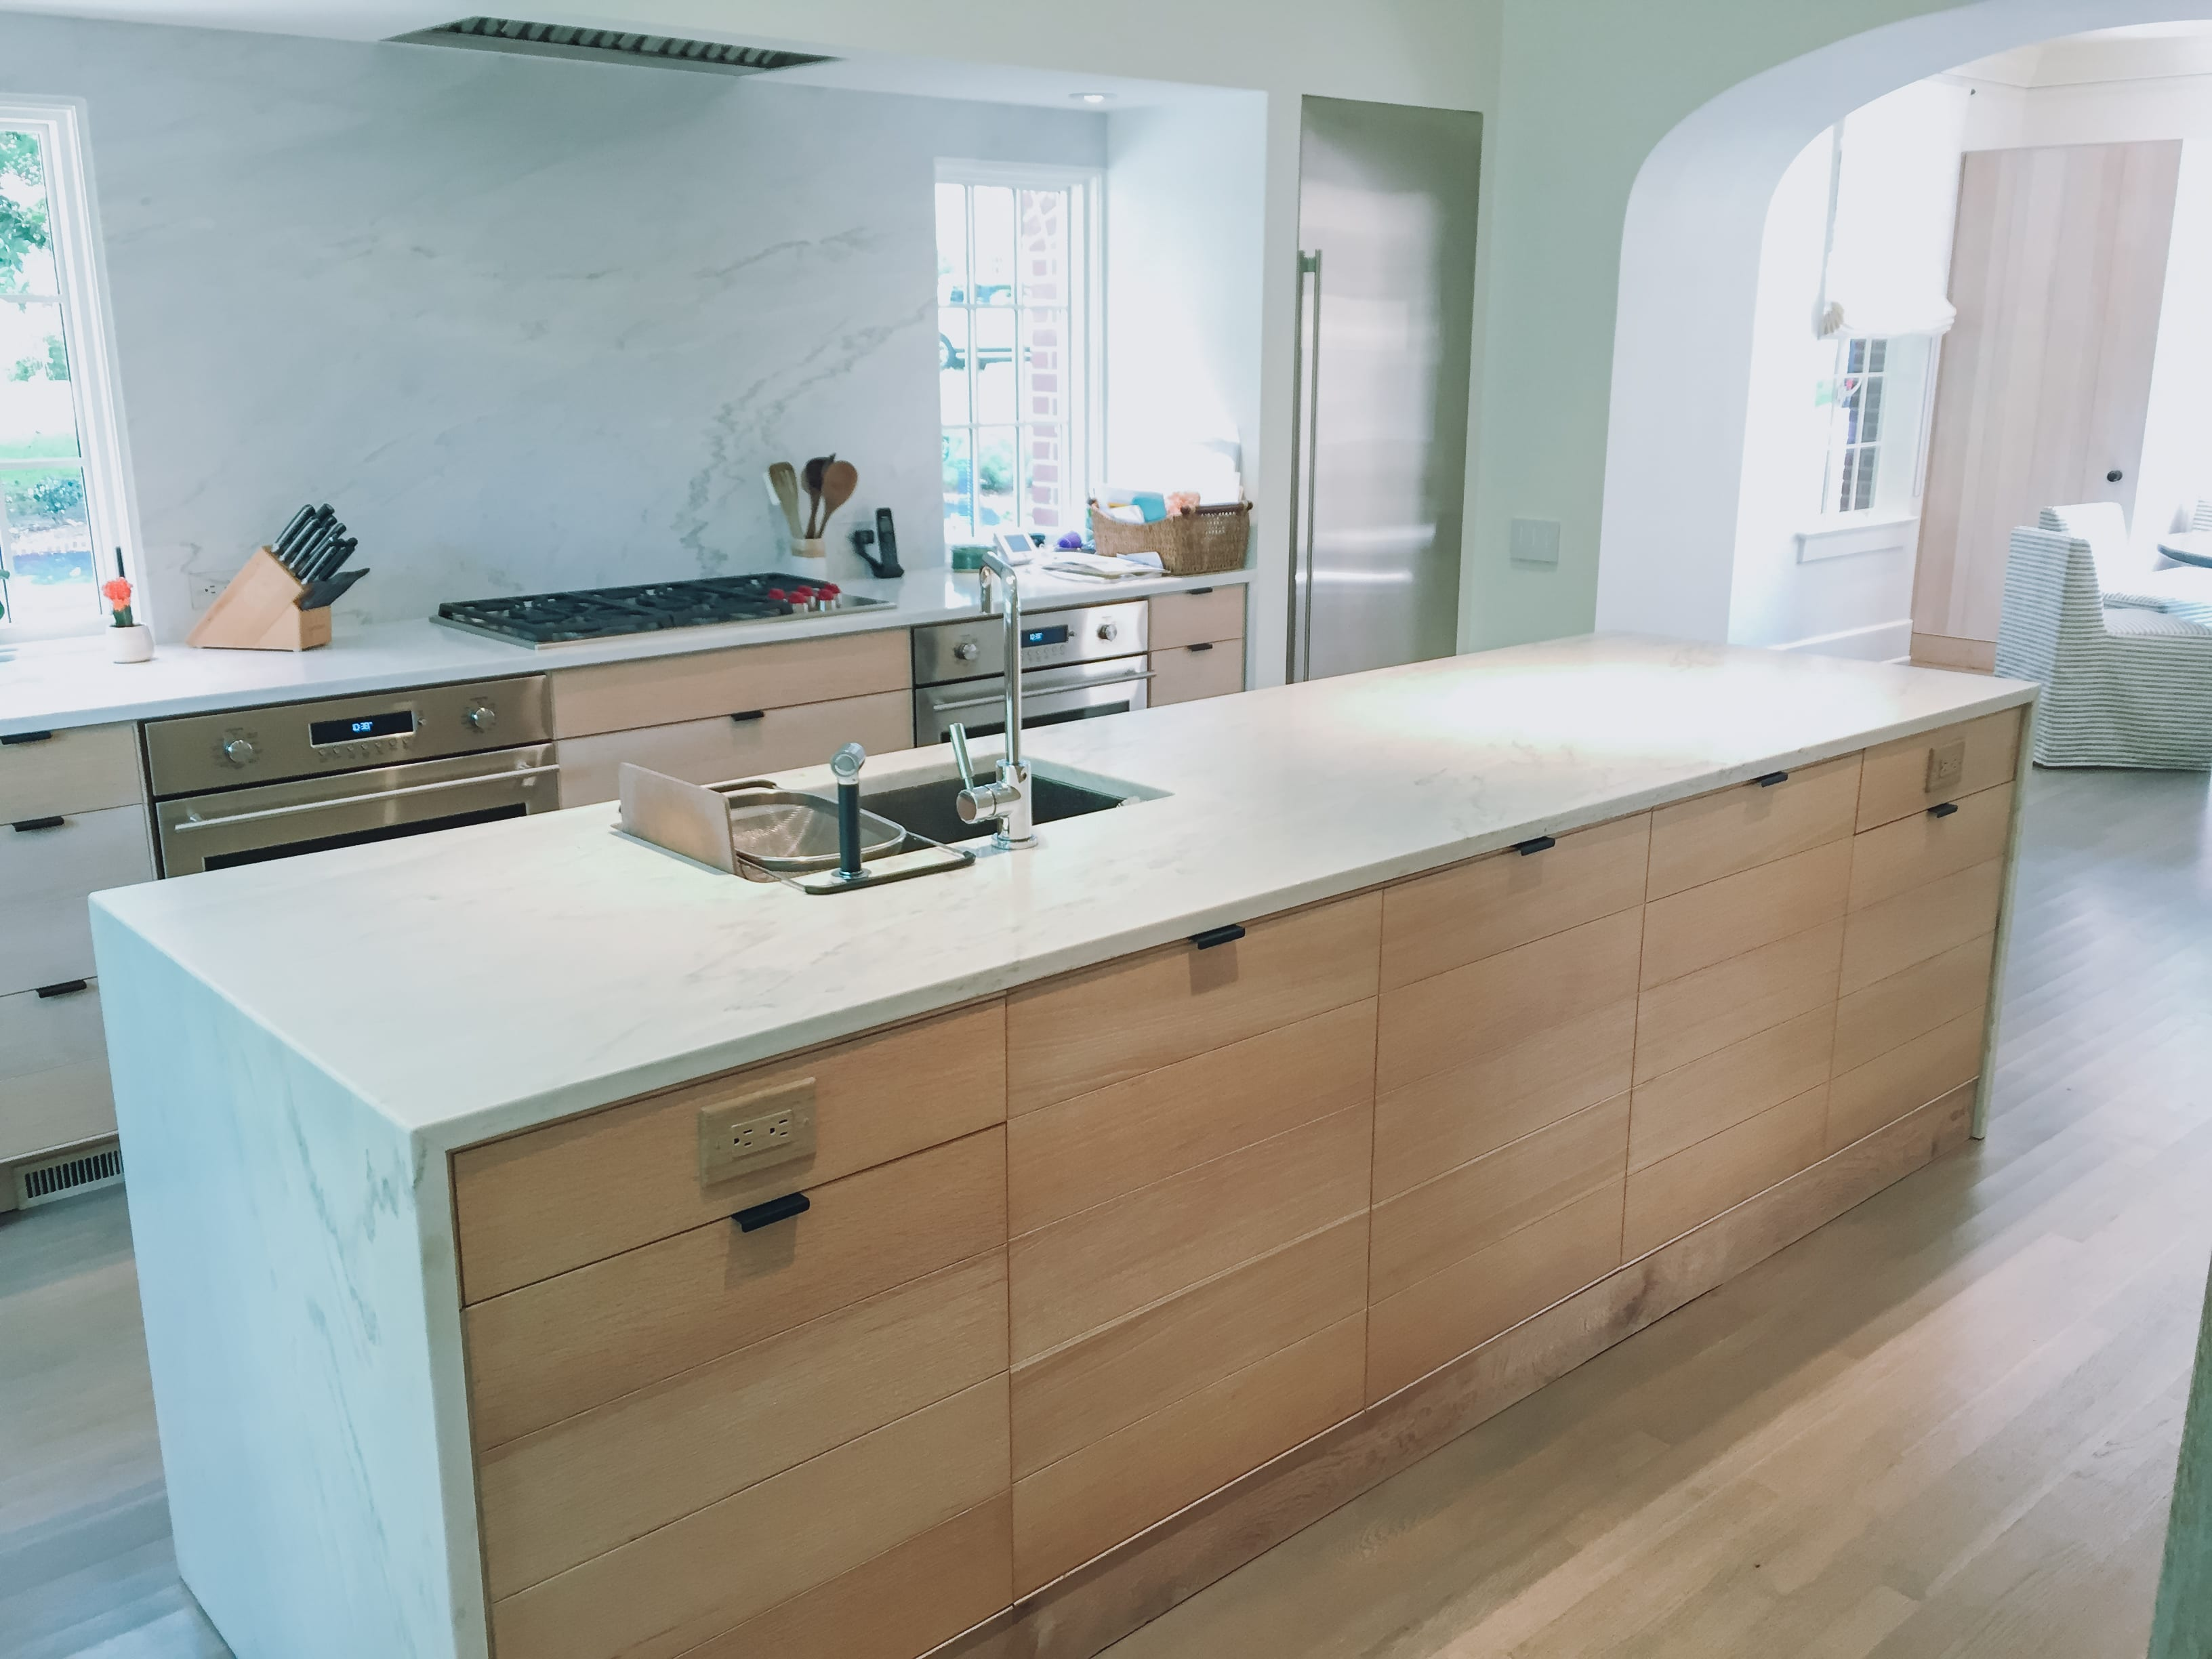 Simple White Oak Kitchen Island with cabinetry